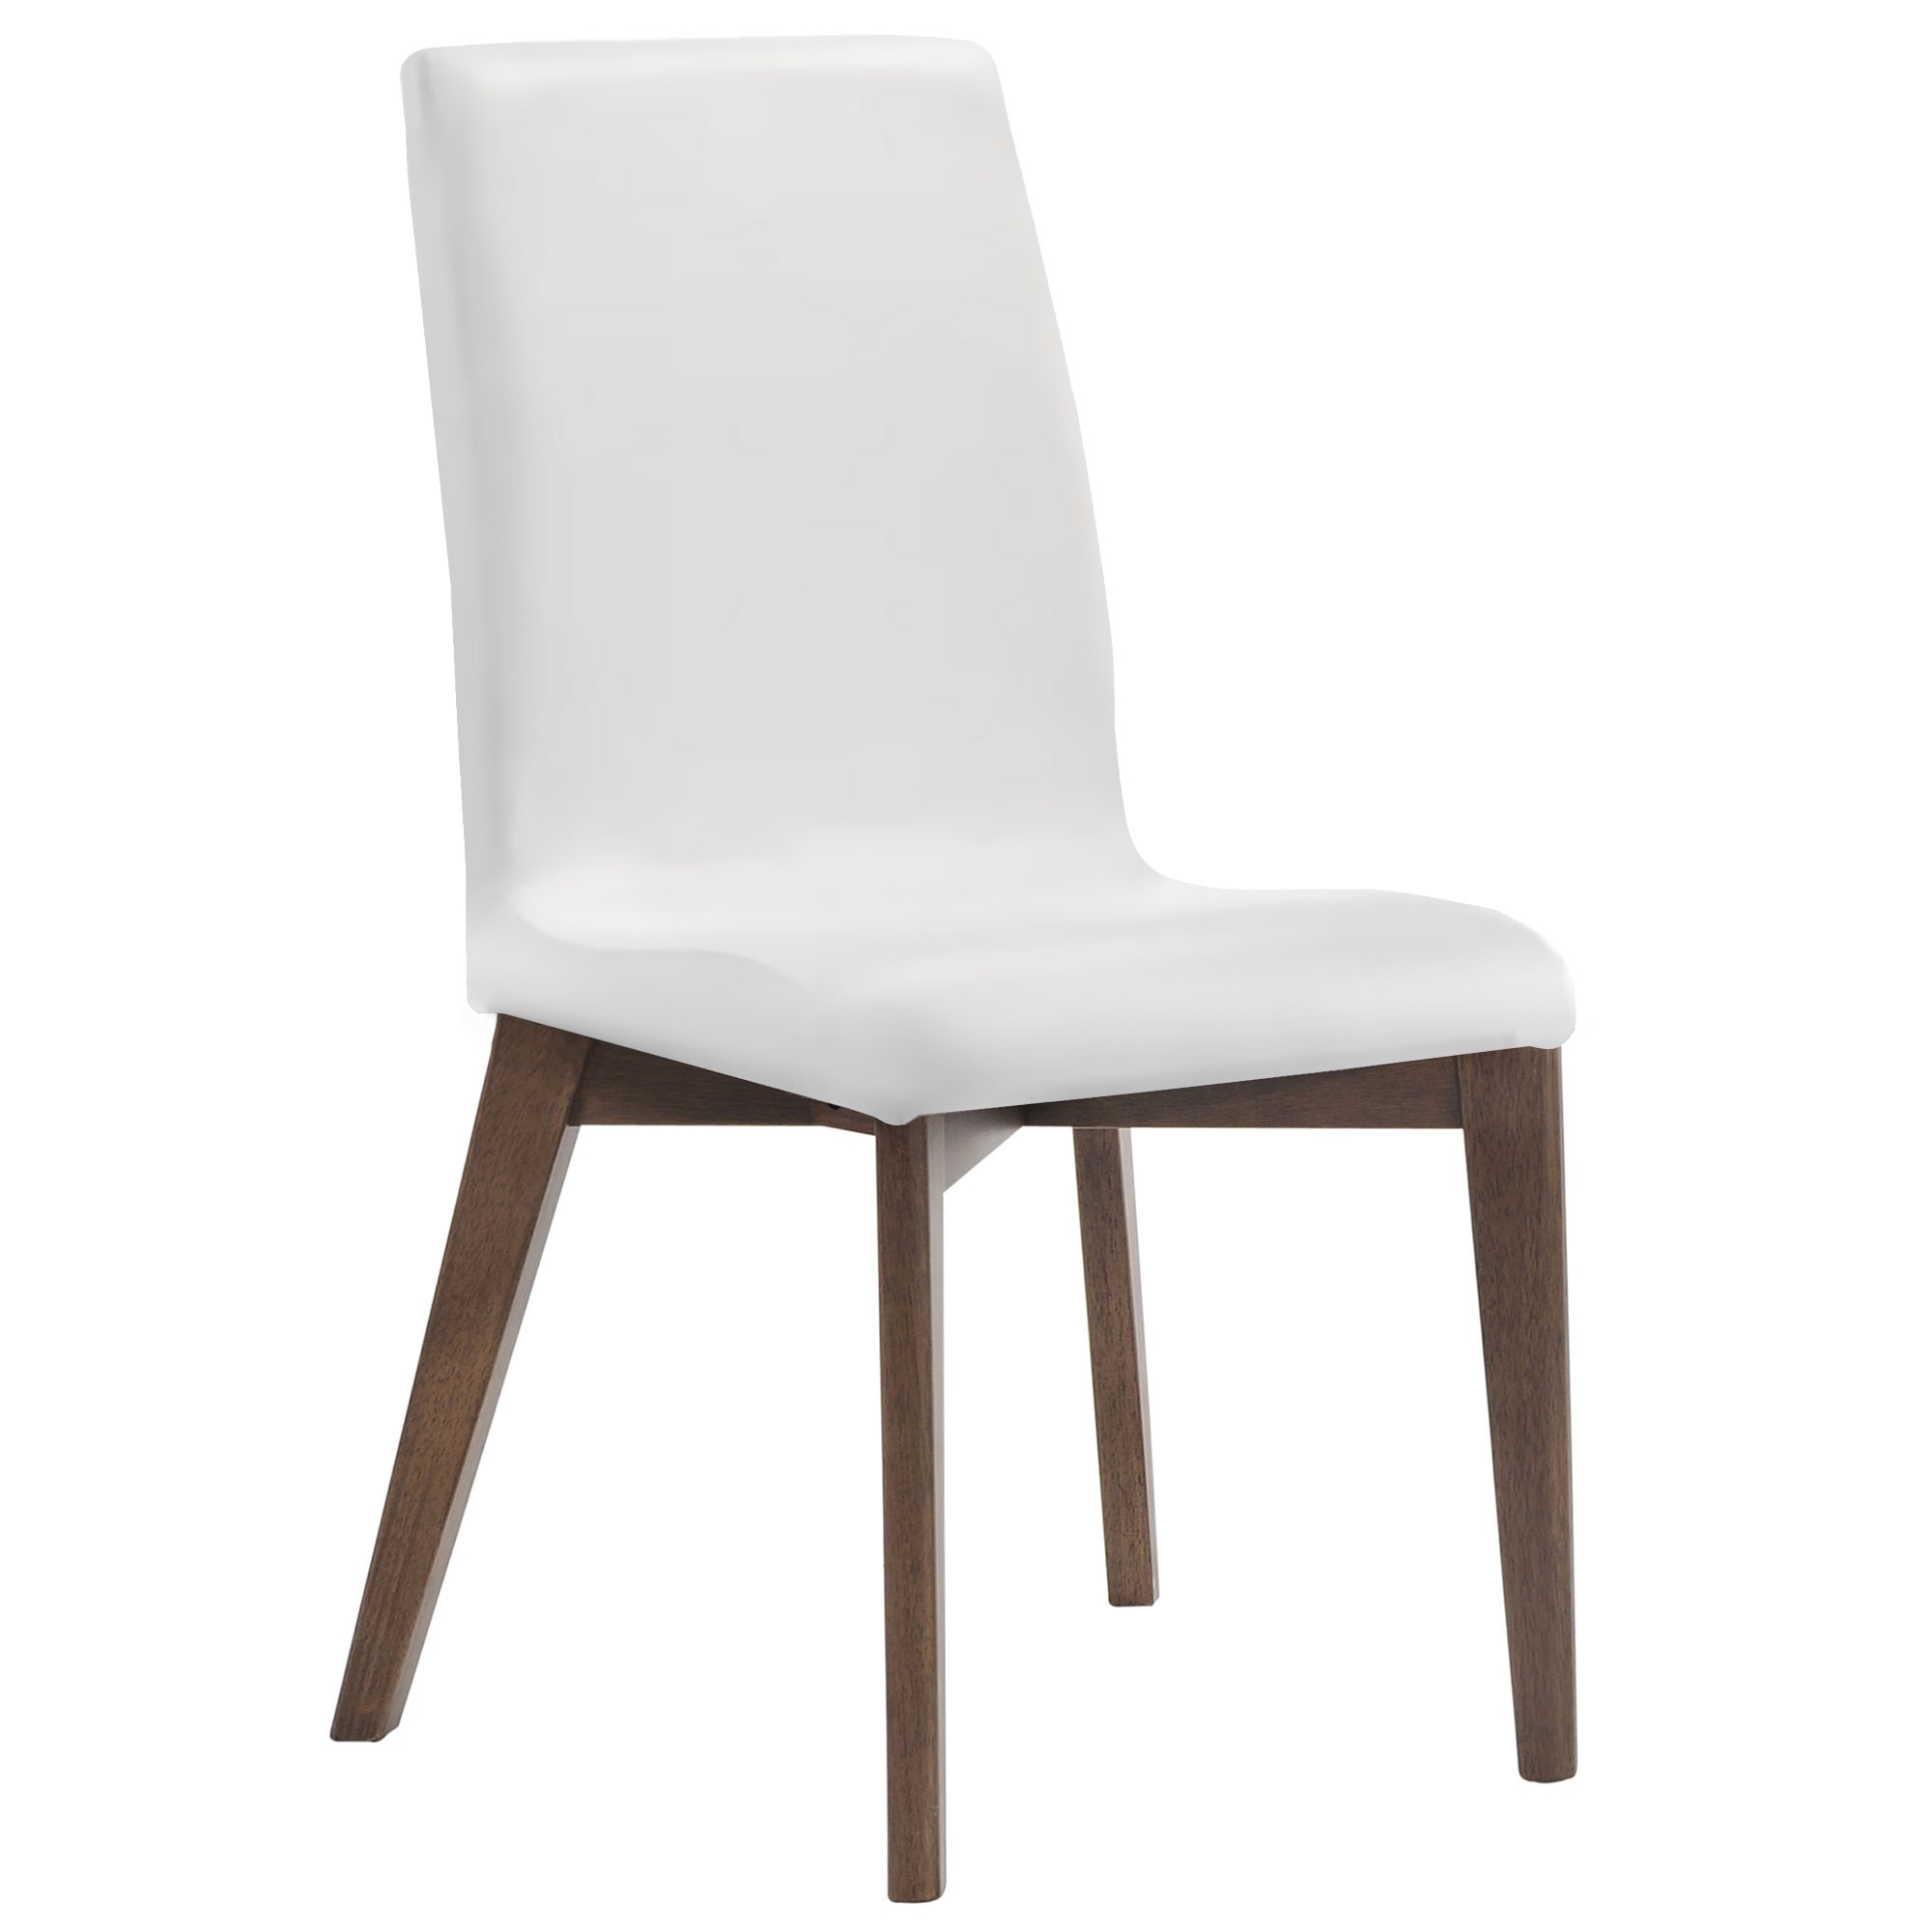 Oslo PU Leather Dining Chair